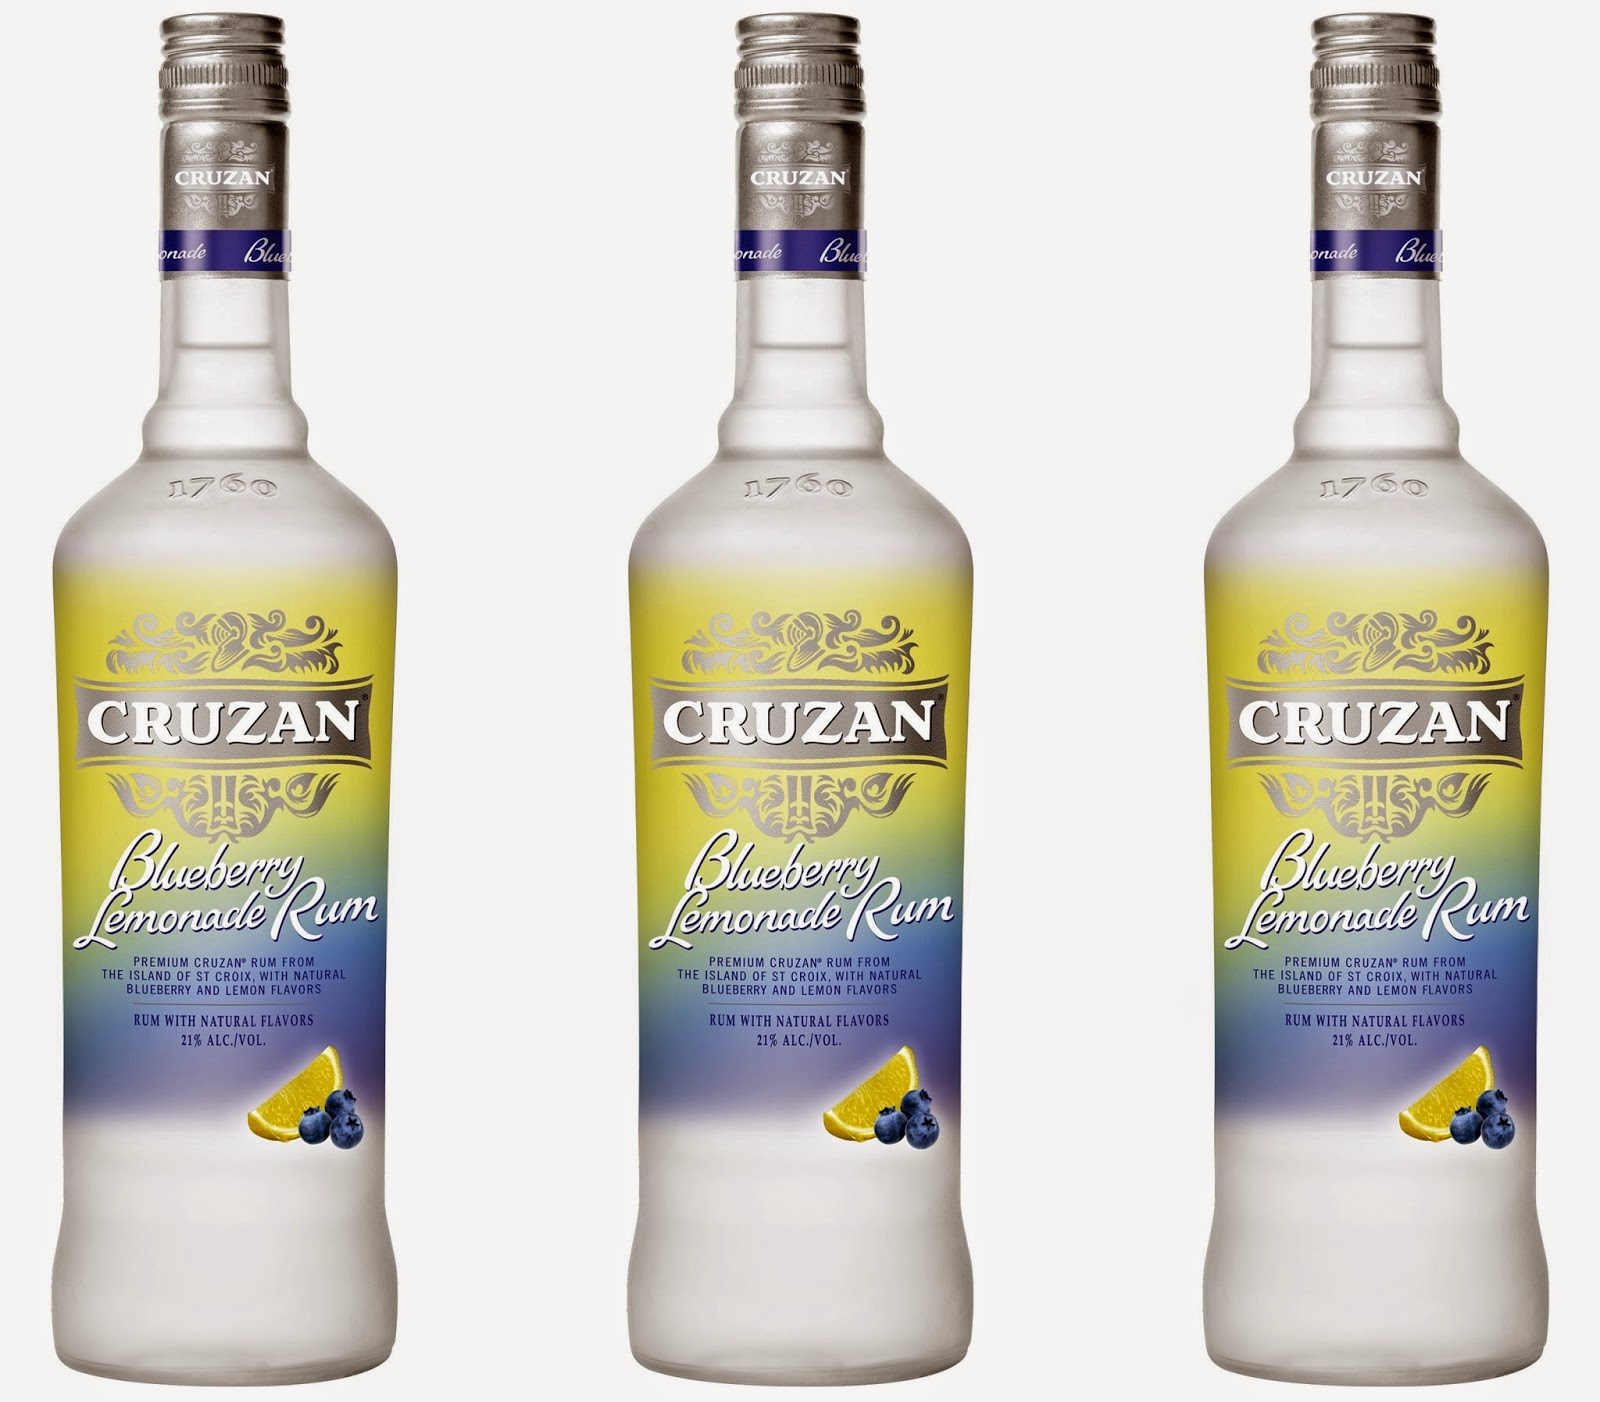 Lemonade The And On Flavored Introduces List My Life Off Rum Guest New Cruzan Blueberry